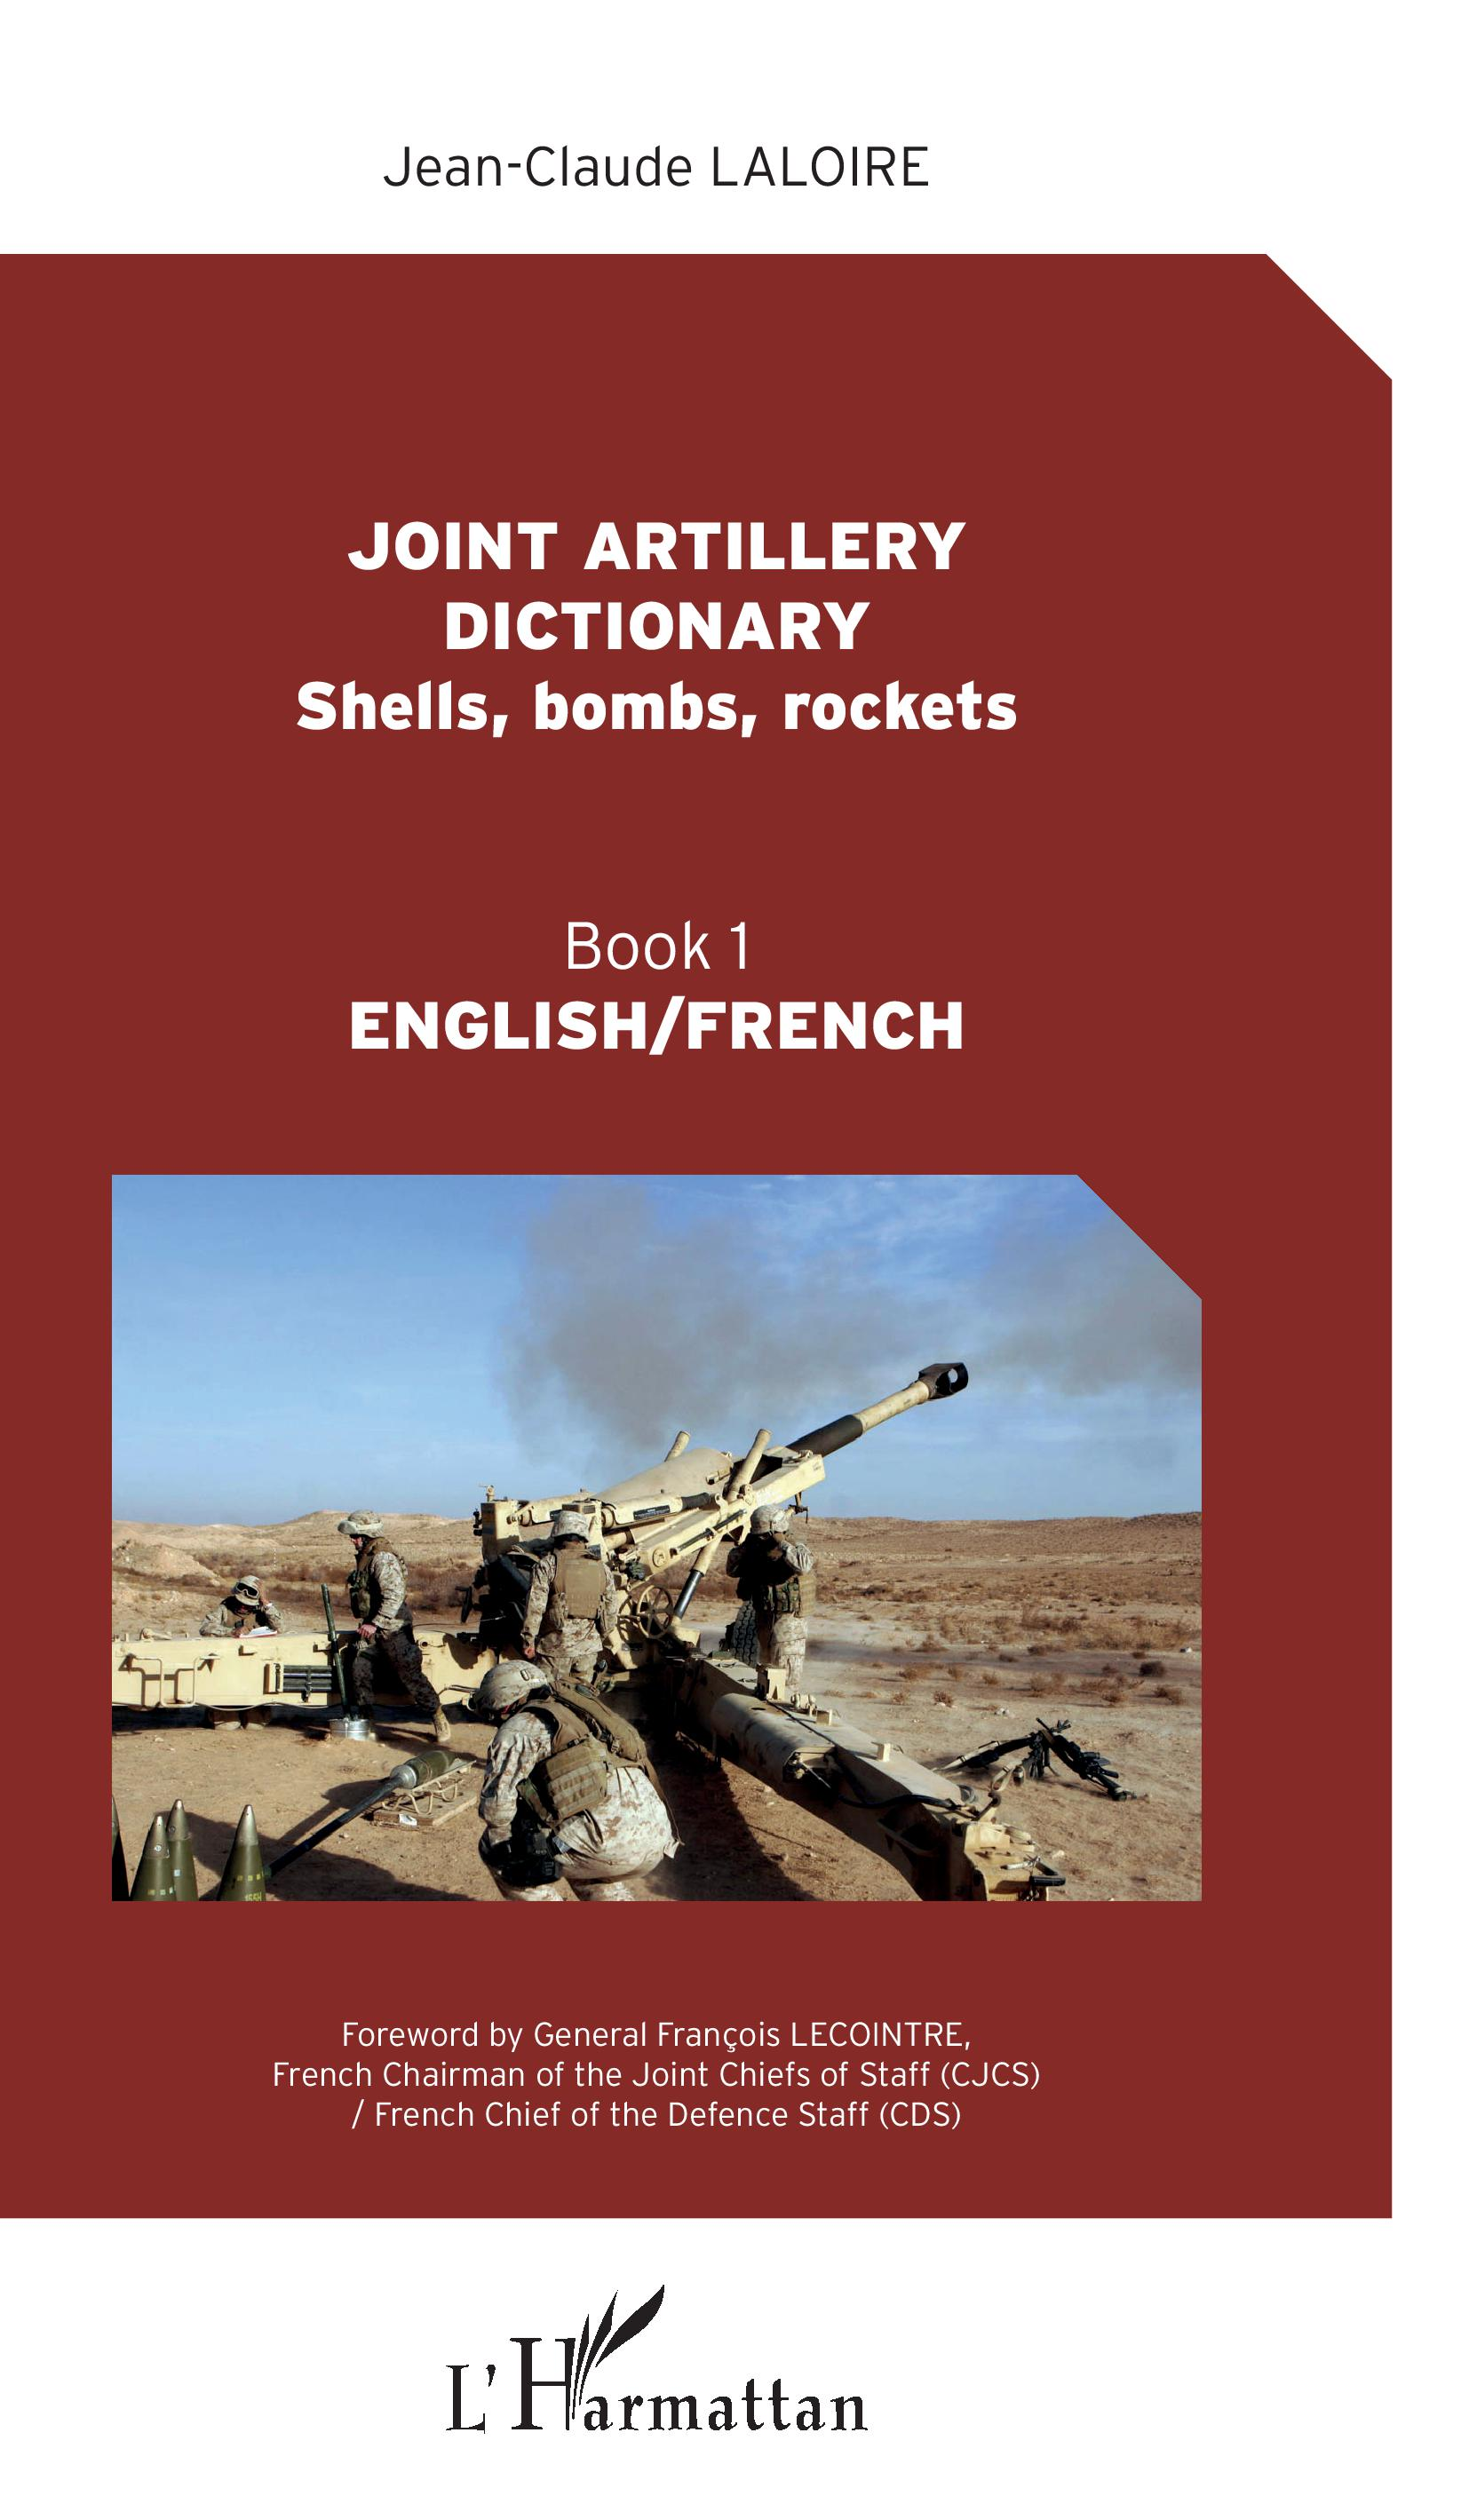 Joint artillery dictionnary